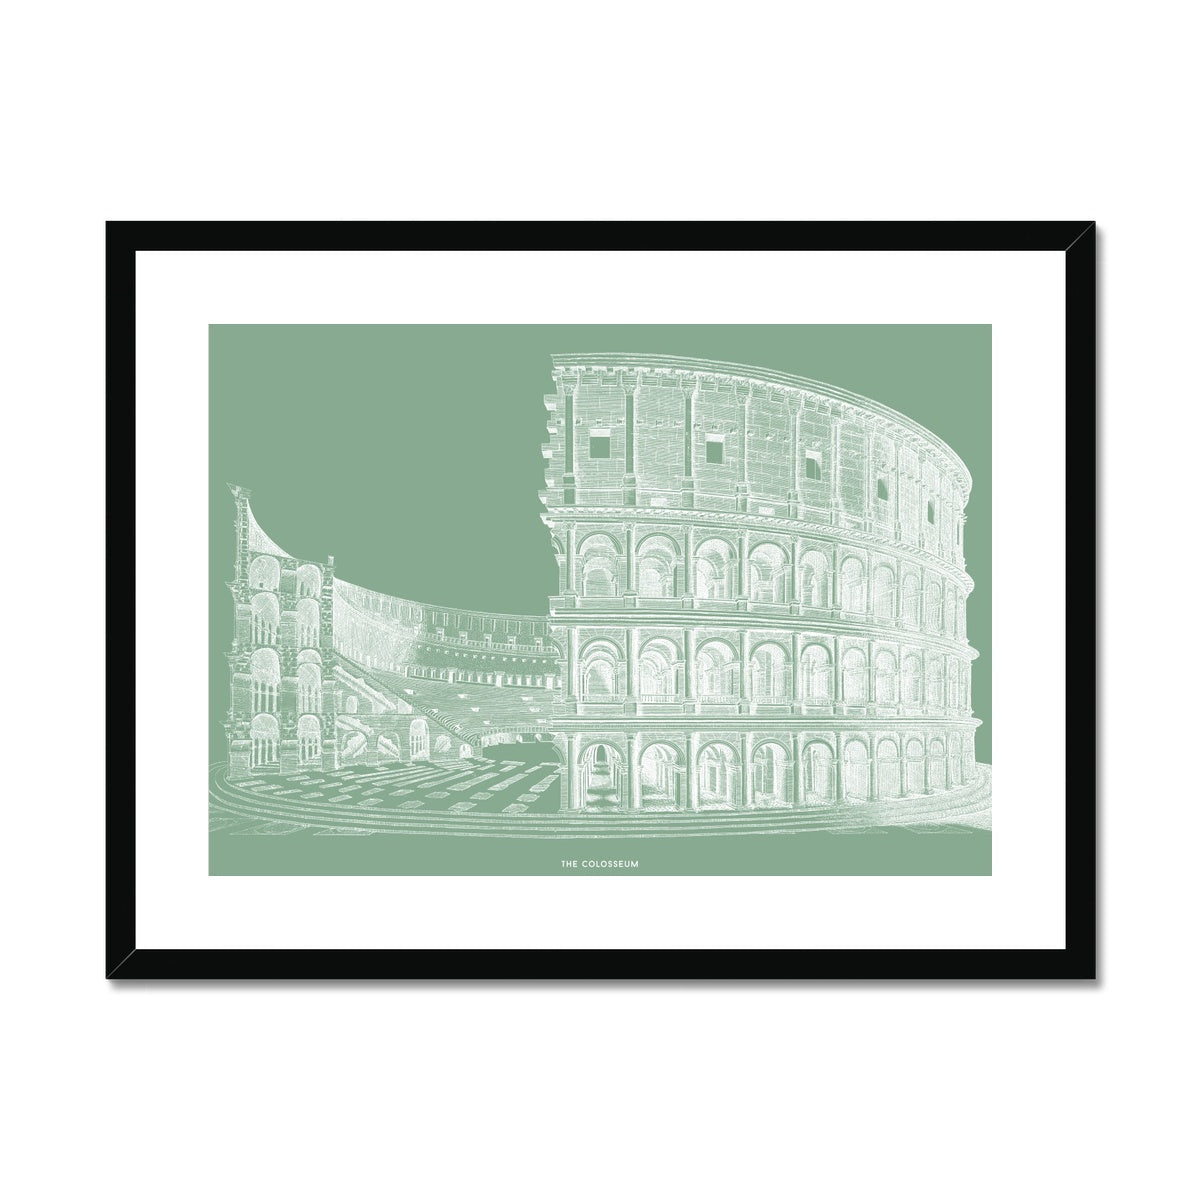 The Colosseum - Cross Section - Green -  Framed & Mounted Print